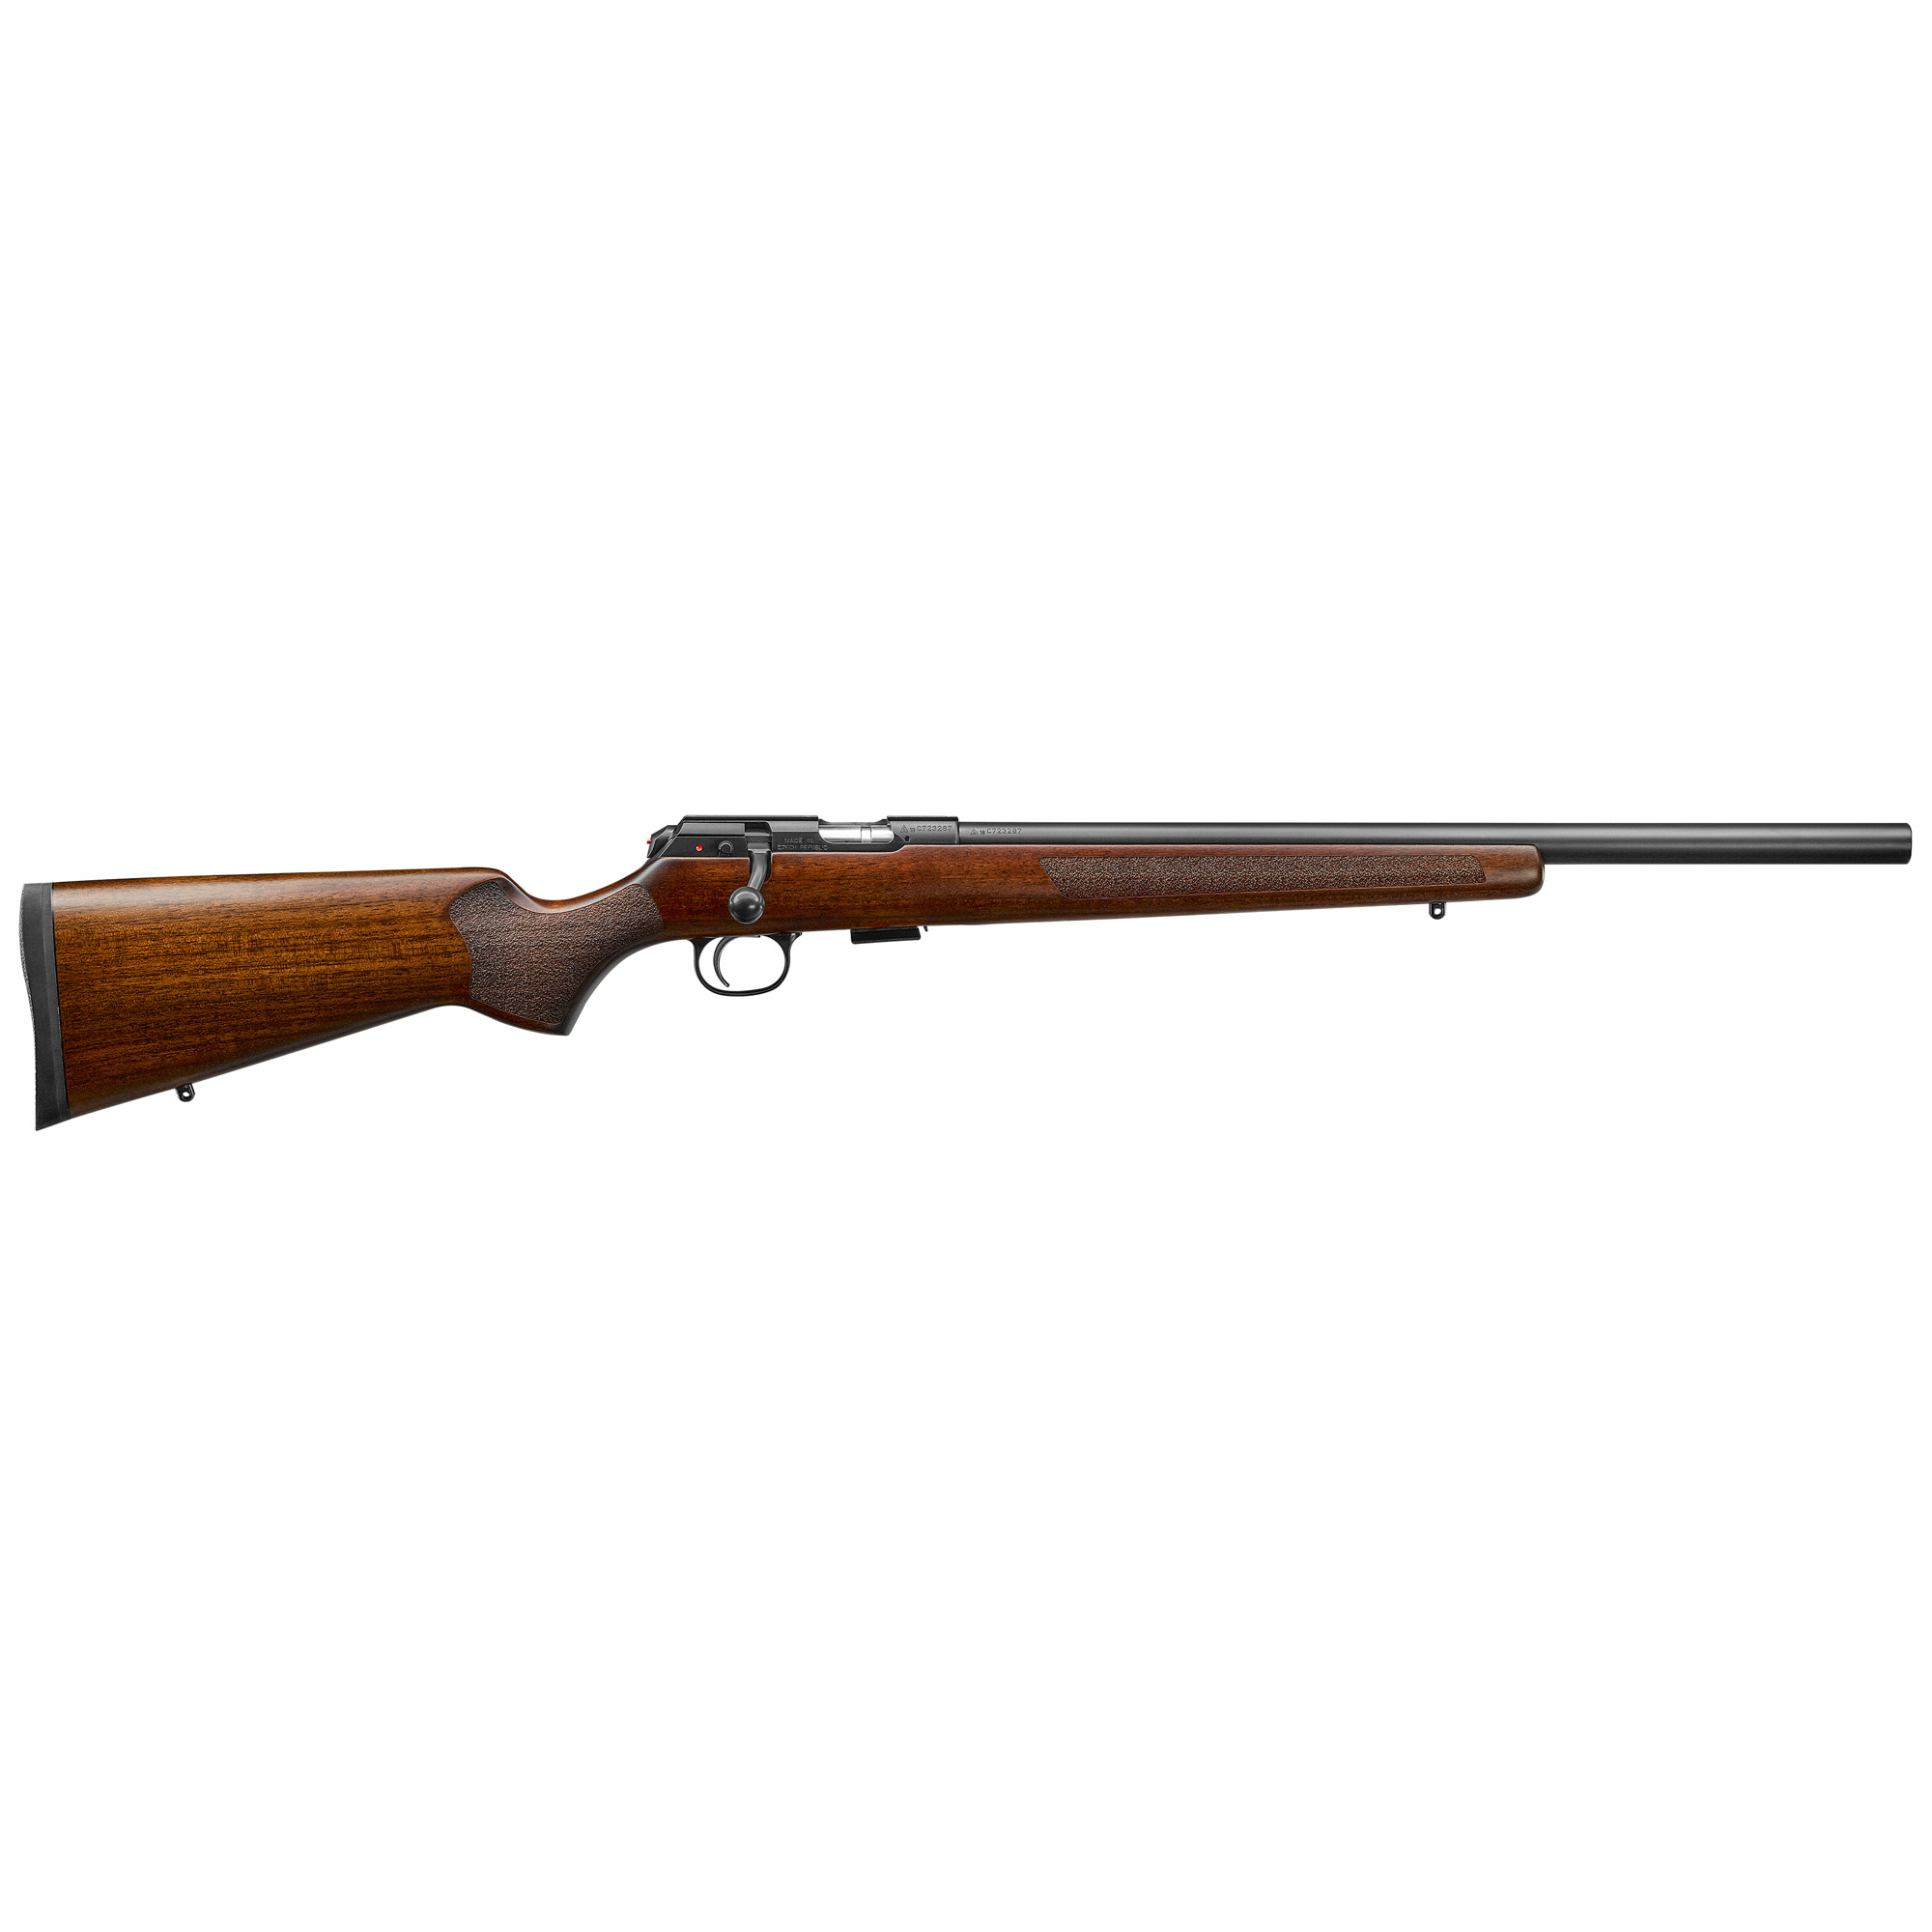 """The standard heavy-barreled version of the 457"""" the Varmint has a .866"""" cylindrical barrel. Not only does the heavy barrel make for good harmonics"""" it also allows the Varmint to perform well with a wide variety of rimfire loads"""" translating into an accurate platform for shooting targets or getting game. The Turkish walnut stock has an American-style comb for use with a scope and a wide"""" flat forend that rides a sandbag well. Laser-cut stippling gives grip fore and aft. This is the .22 WMR"""" 5-round model."""